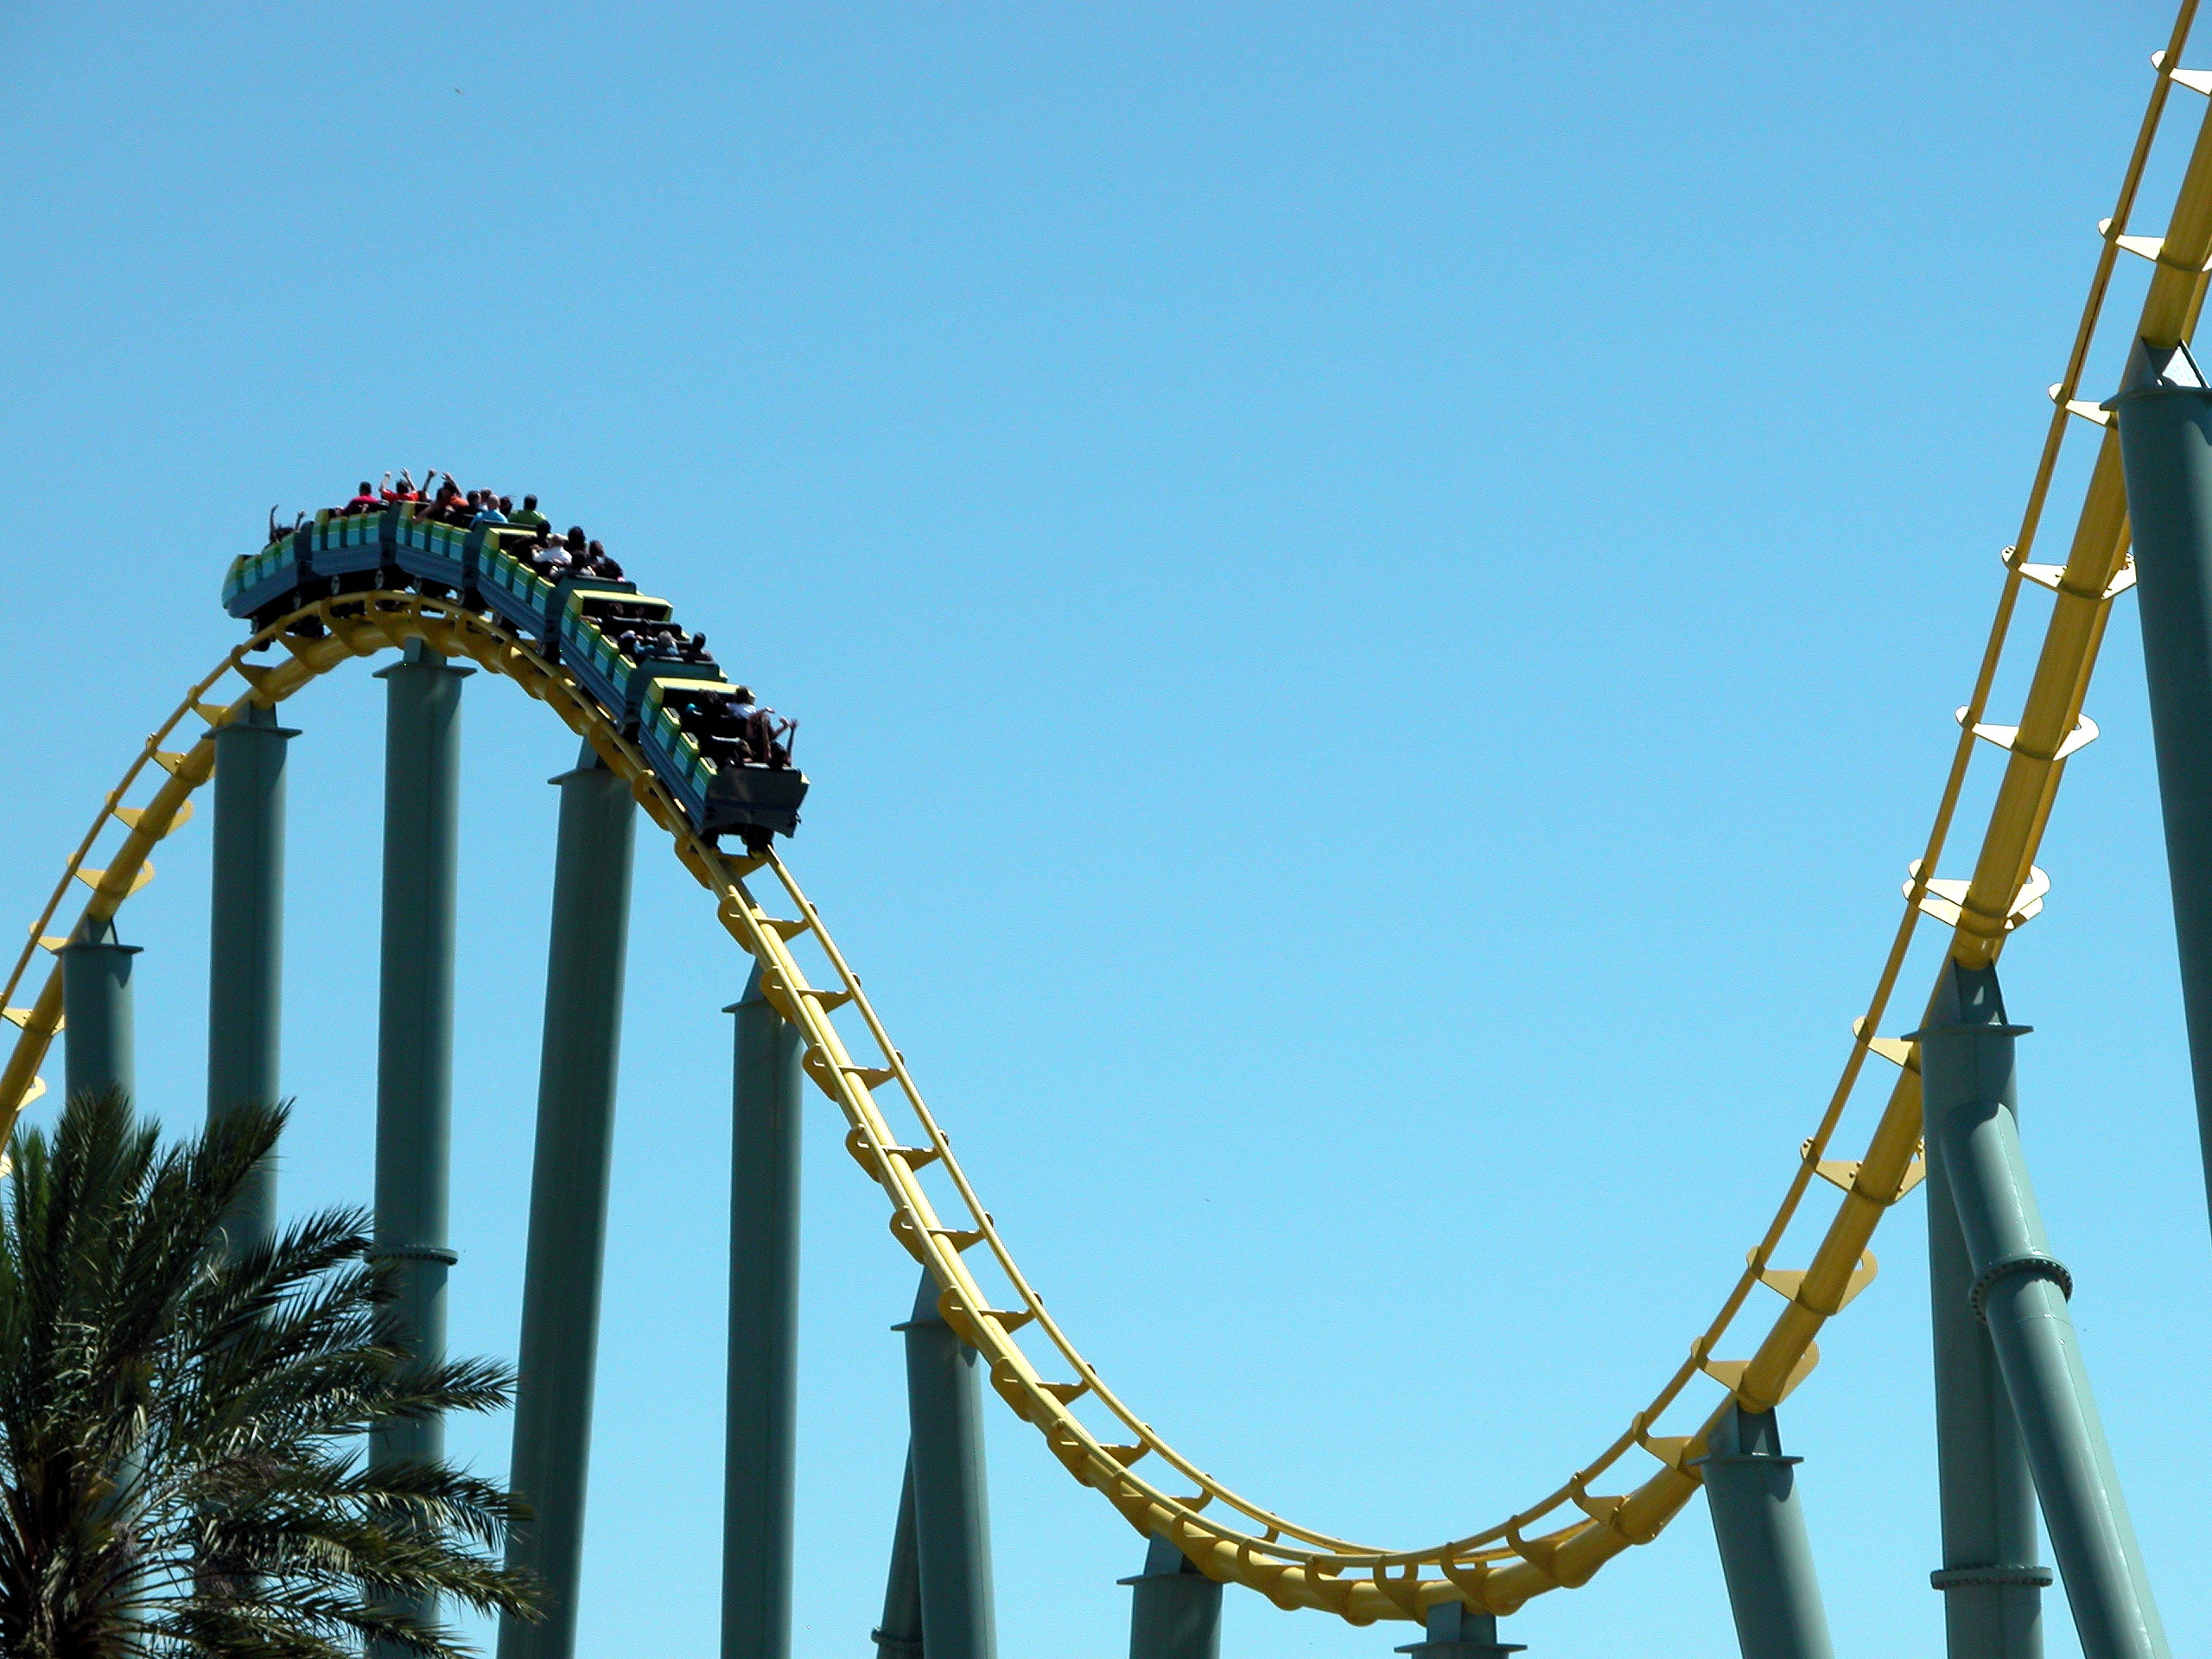 Roller coaster with the group of cars about to go down a descend. Blue sky in background.